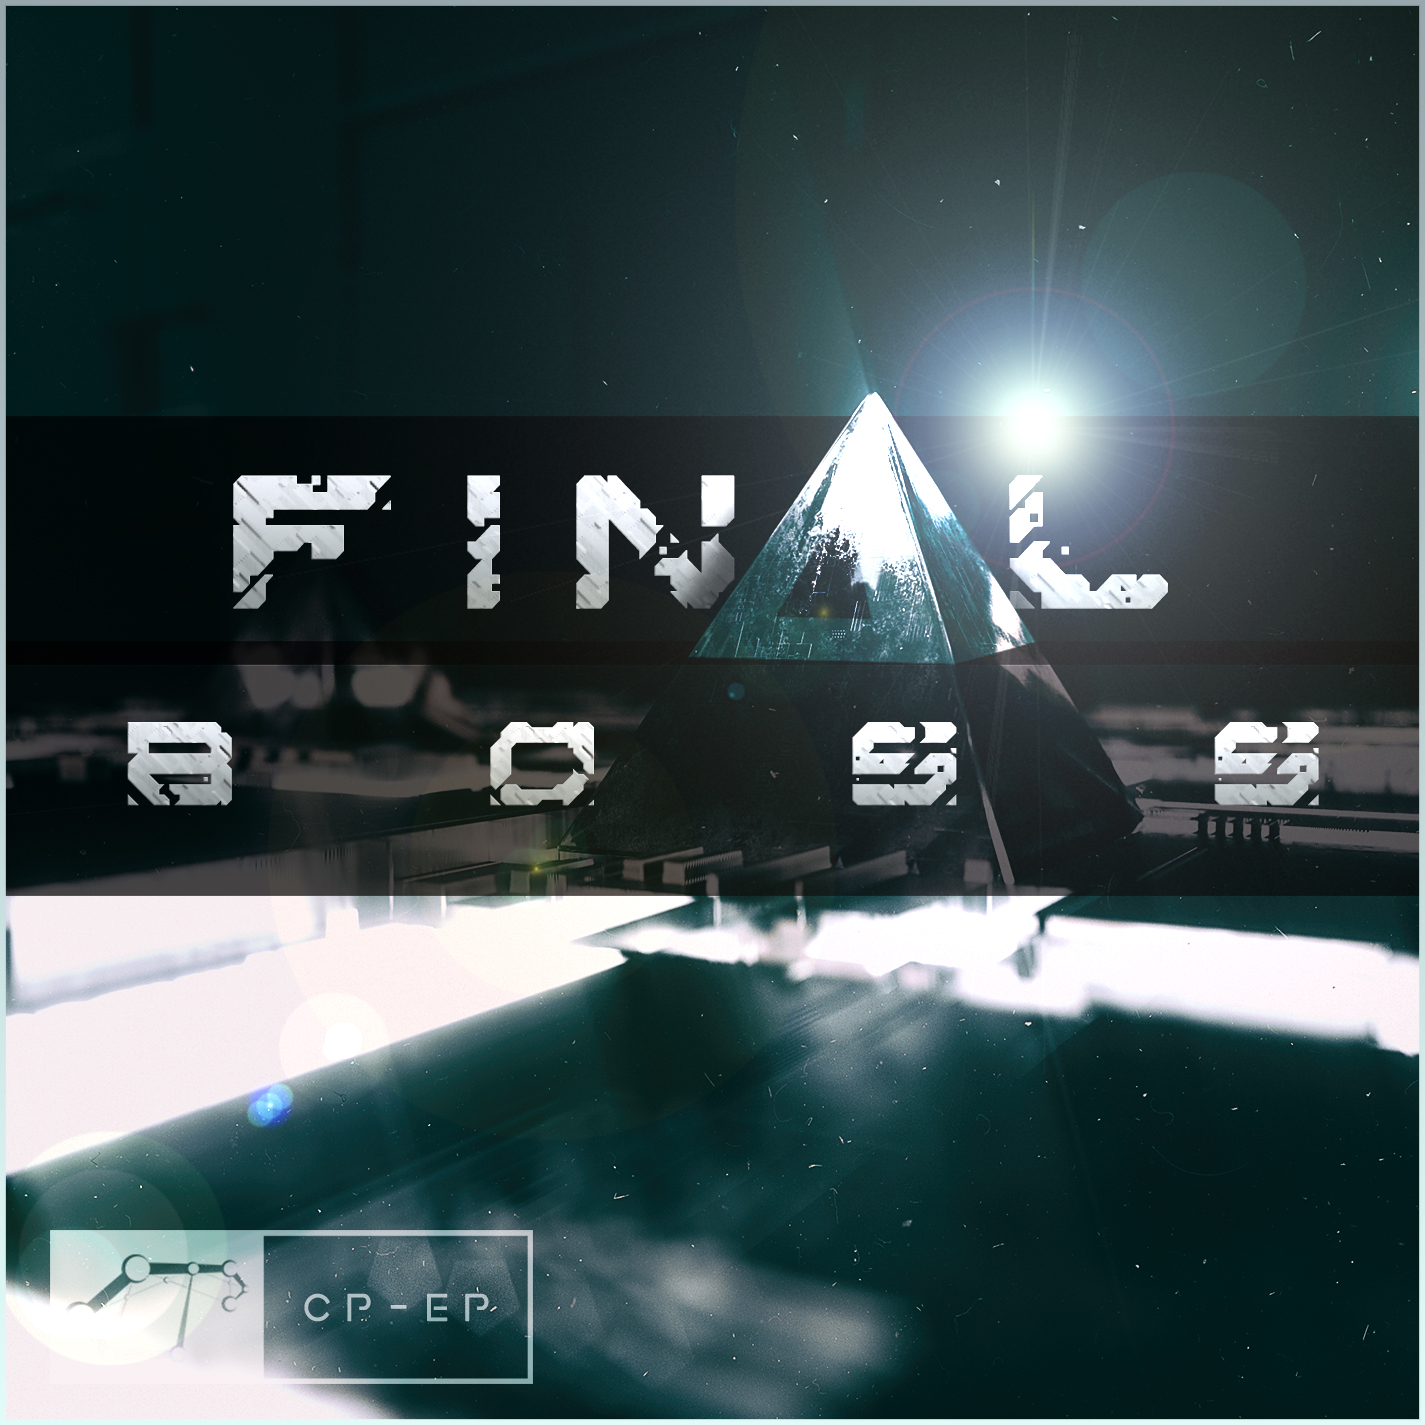 Escvped & Polar shock - Final boss